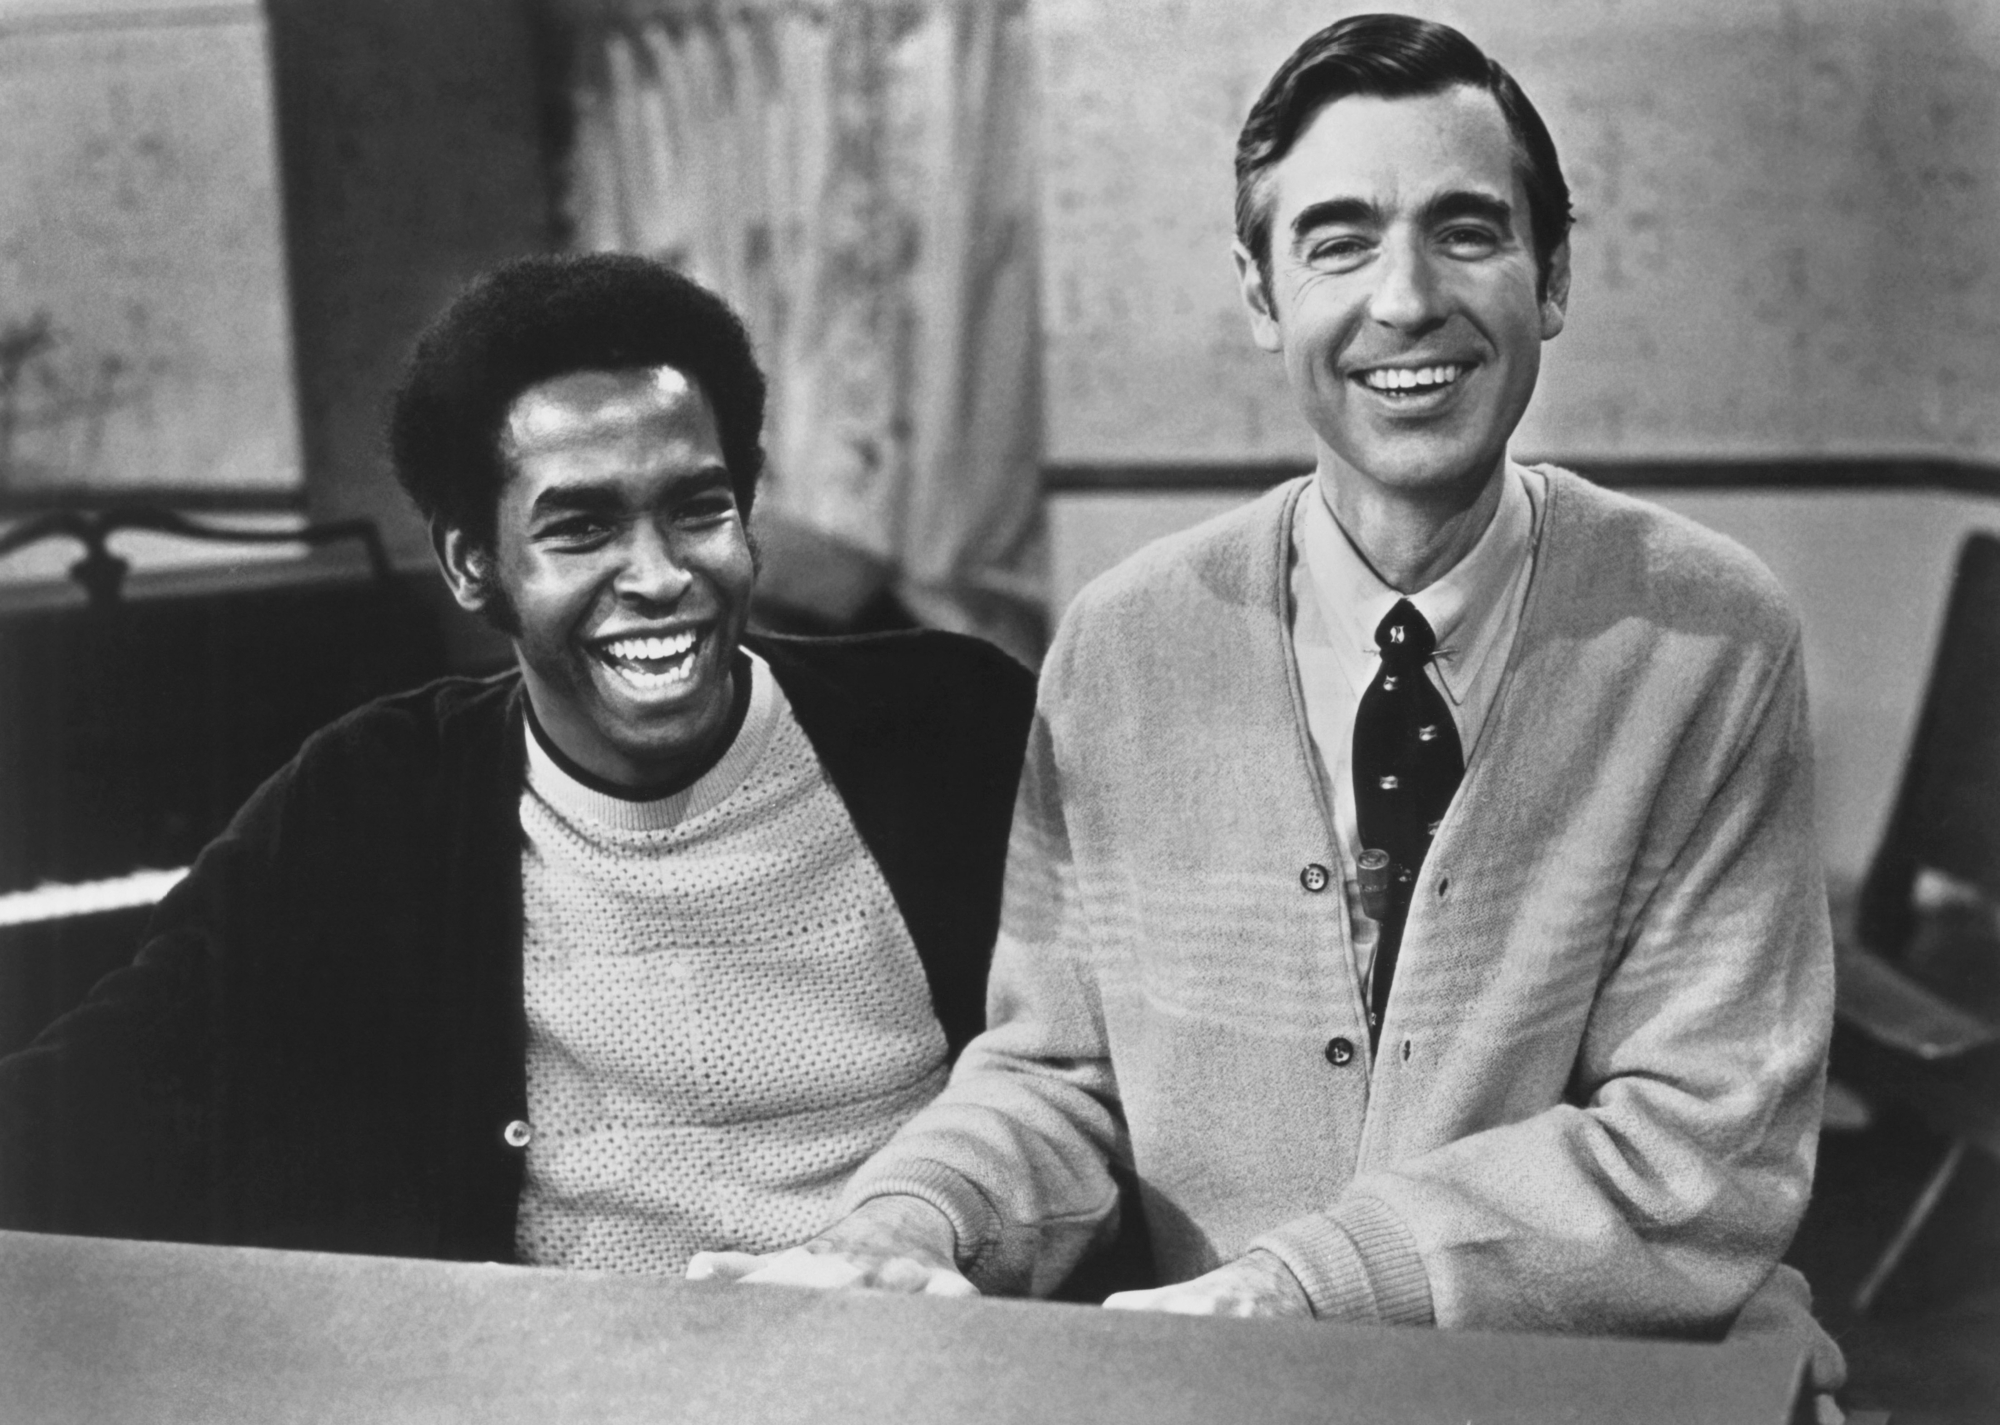 MISTER ROGERS' NEIGHBORHOOD, from left: Francois Clemons, Fred Rogers, 1972 photo, 1966-2001